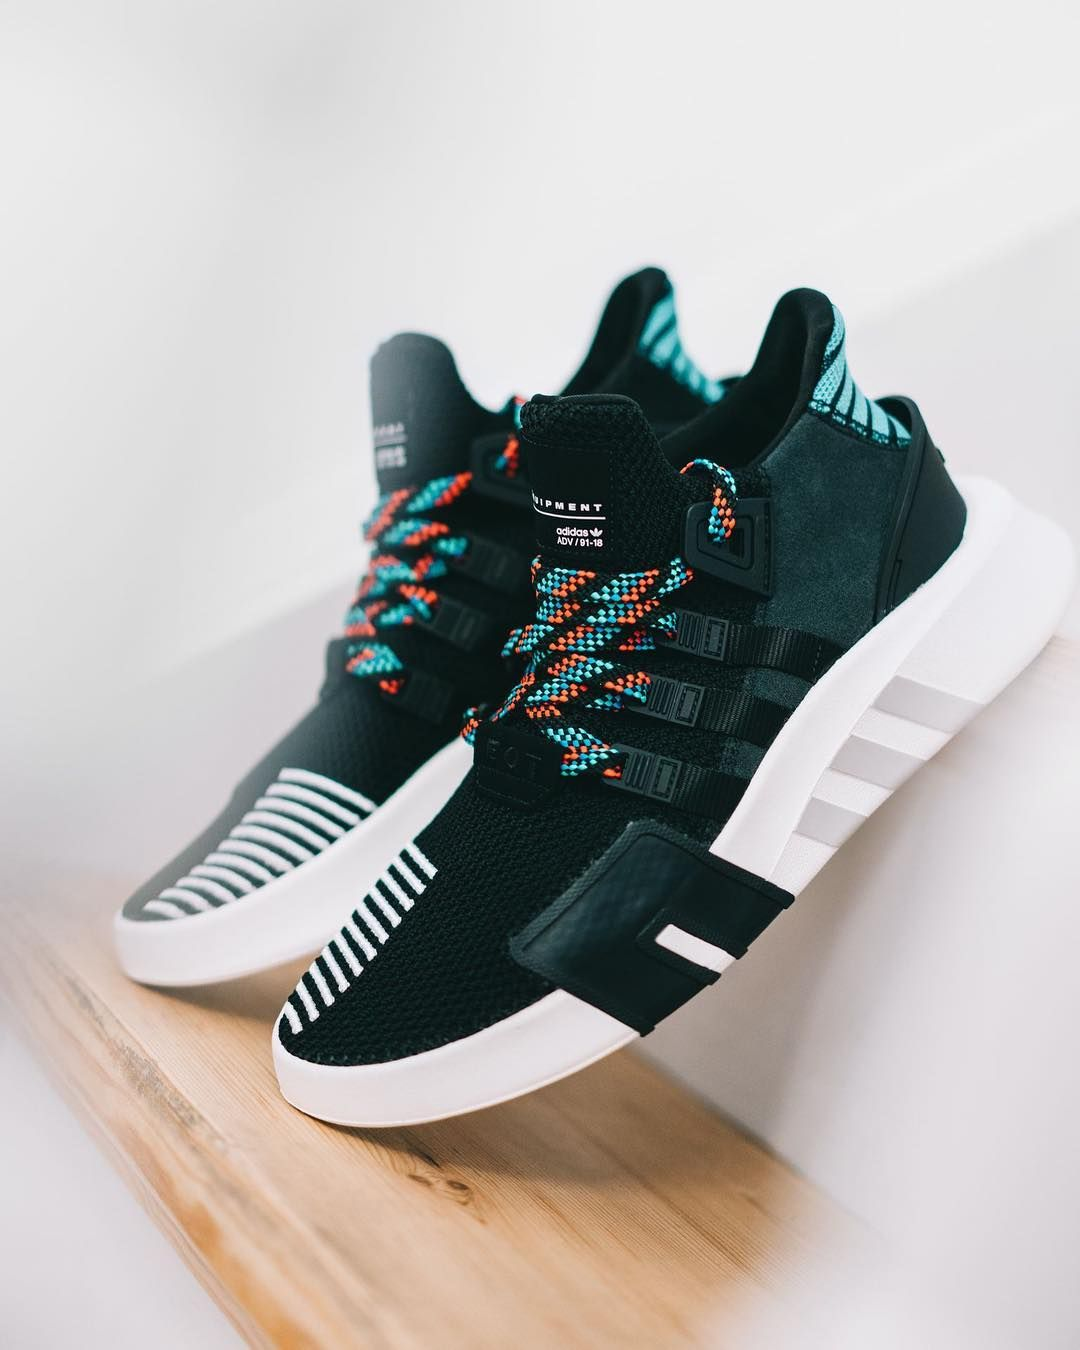 3a302be4171b Adidas EQT Bask ADV Core Black   Sub Green